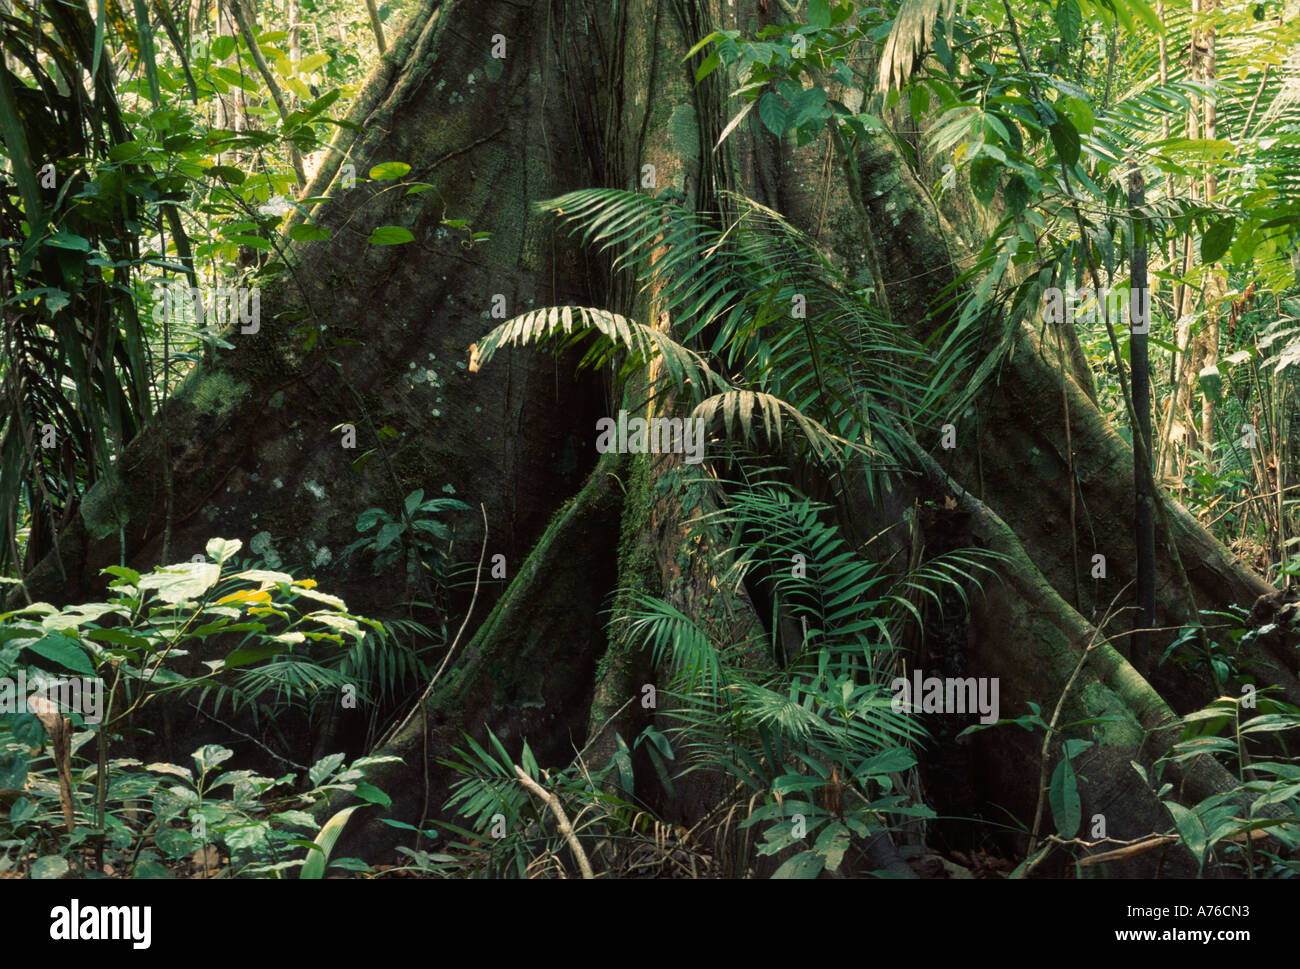 Amazon rainforest understory, rainforest tree with buttress roots - Stock Image